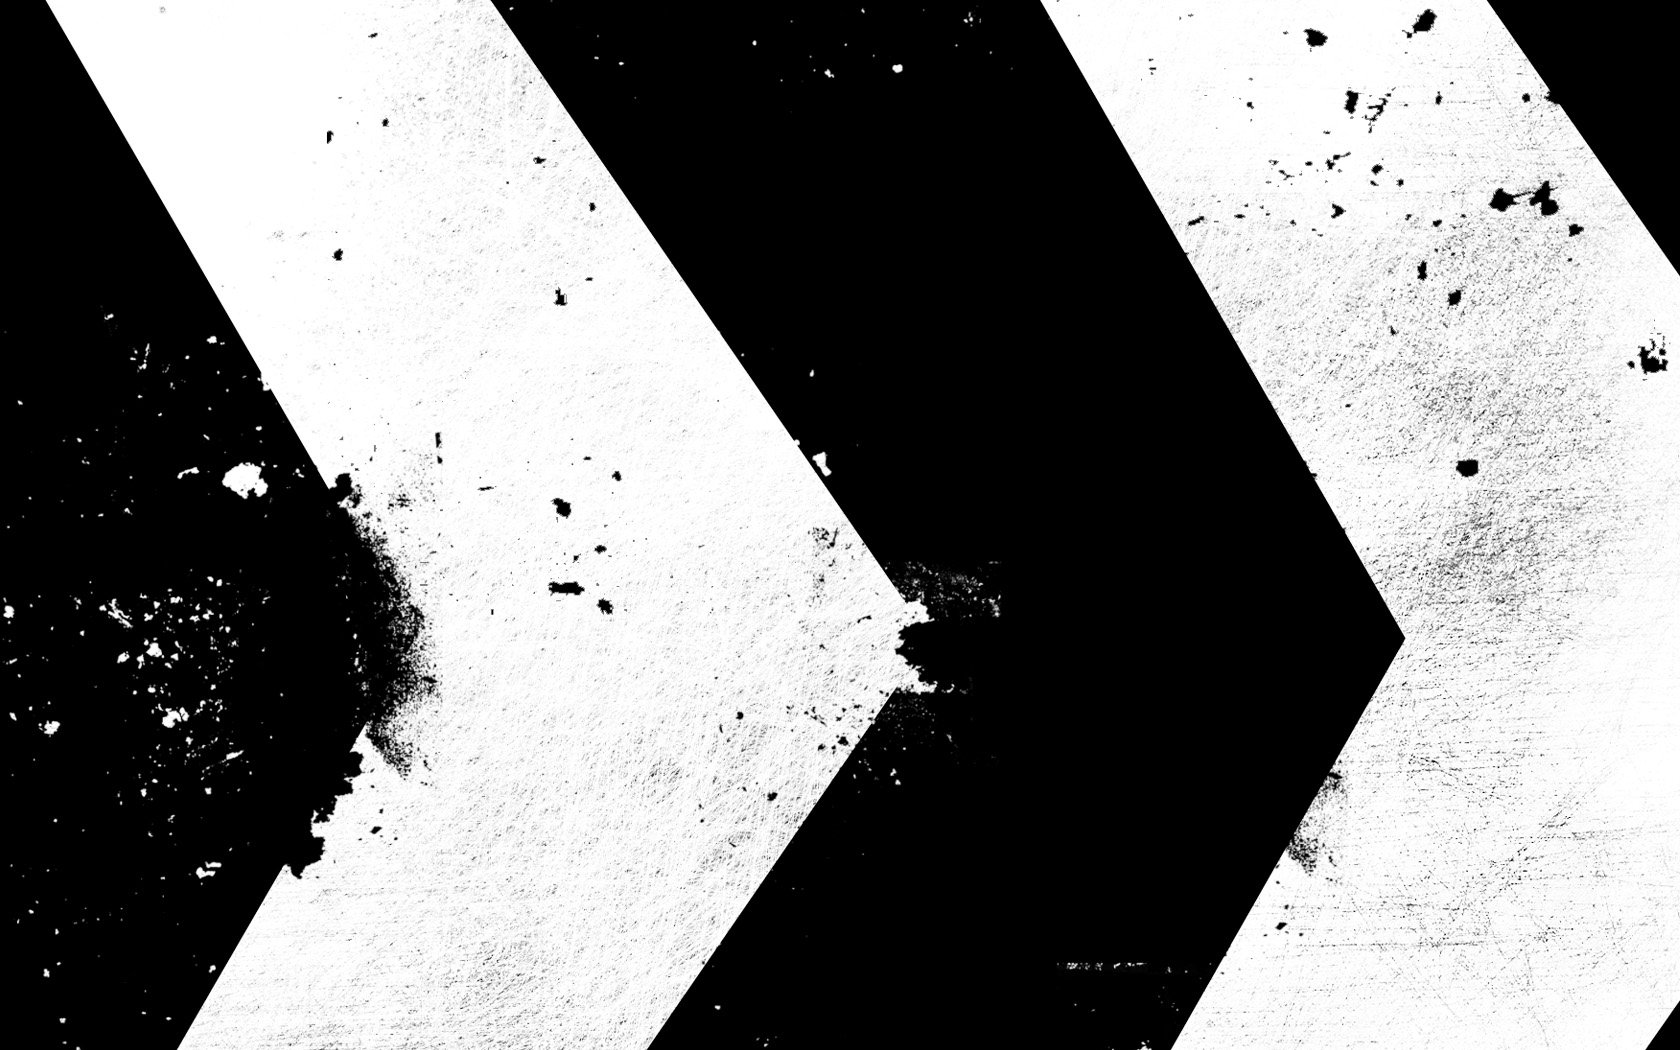 Black And White Abstract Wallpapers Hd For Desktop Backgrounds